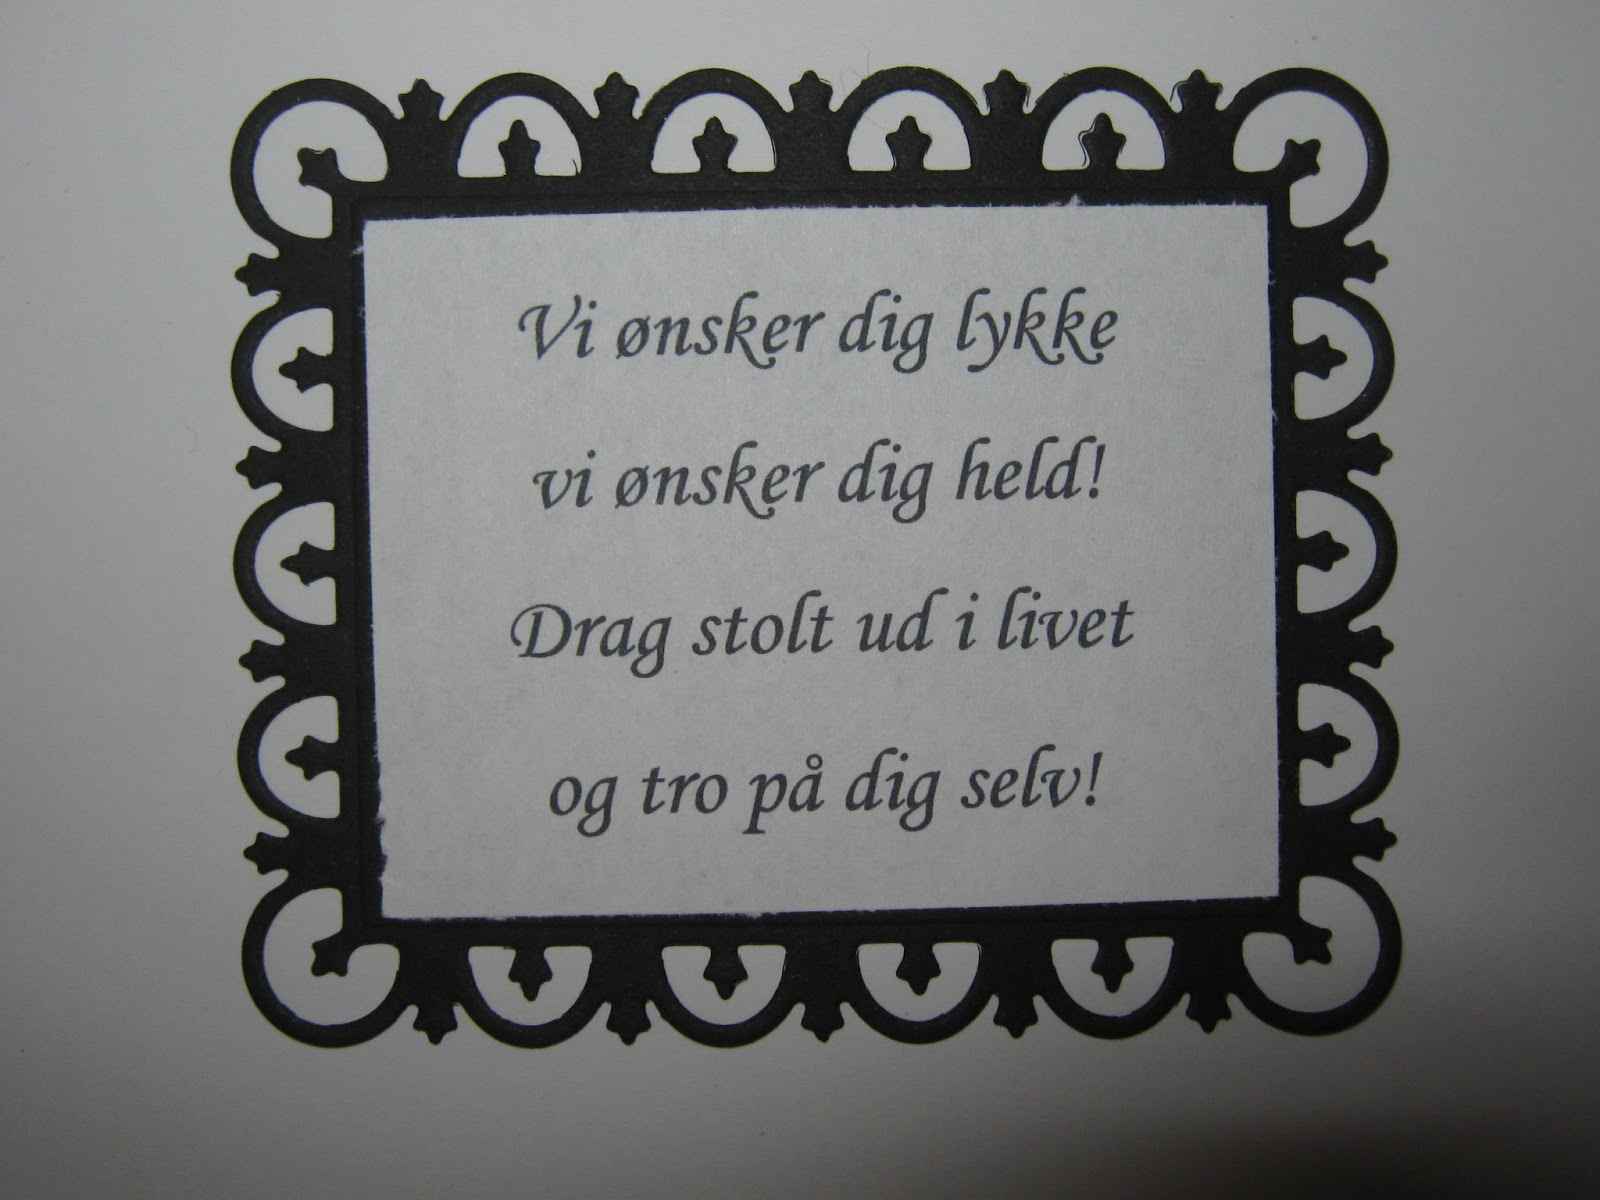 digt til konfirmation tekst